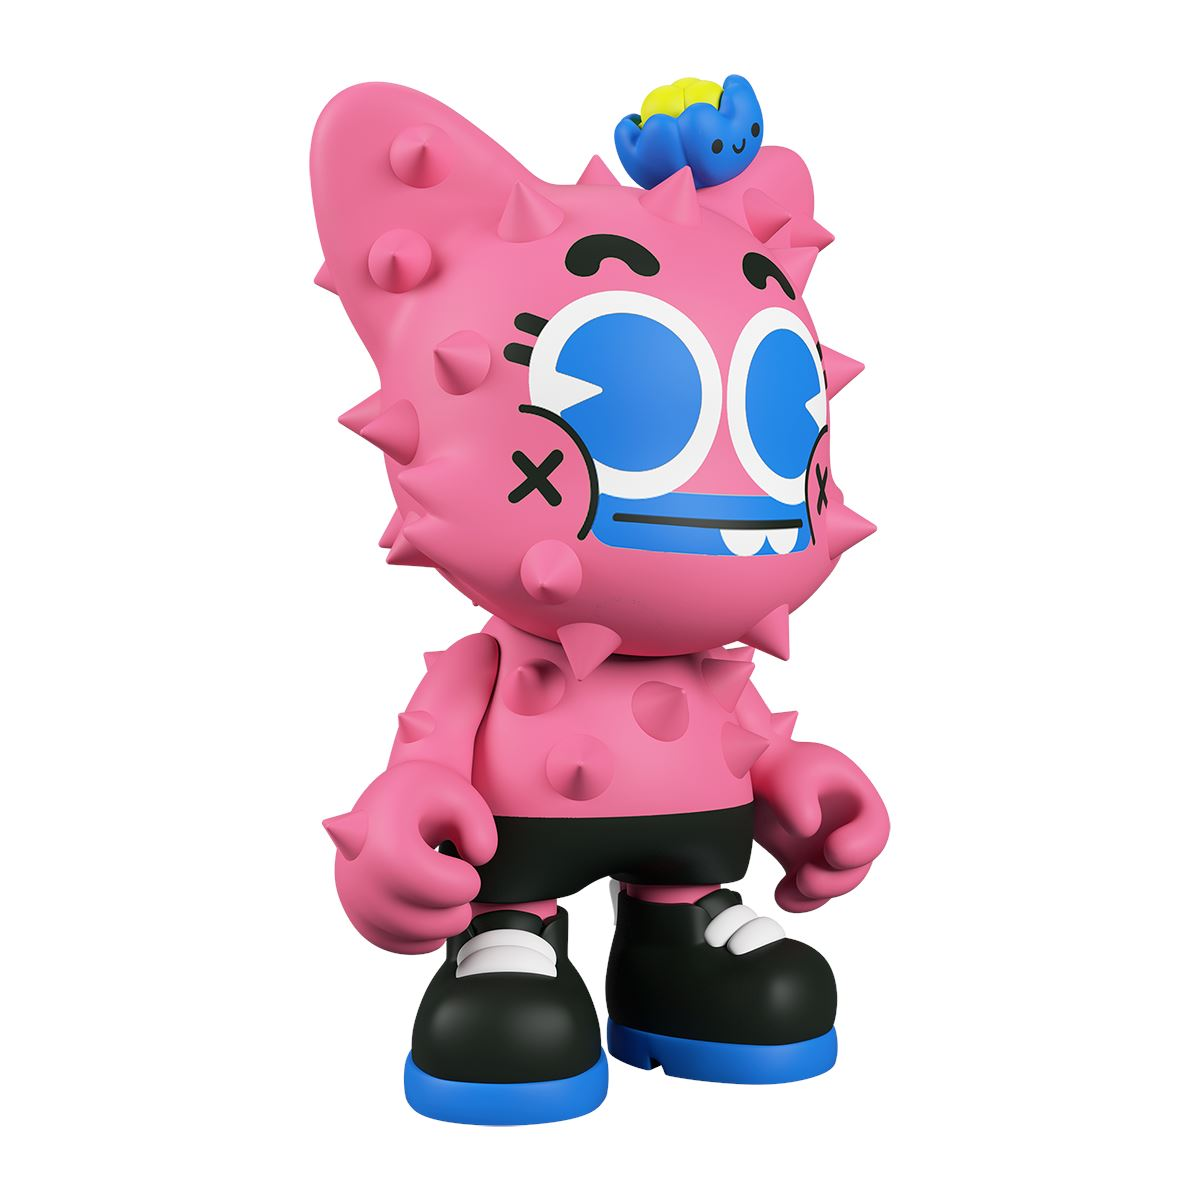 "Nopalito SuperJanky ""Prickle Me Pink"" Edition by EGC & Superplastic 8-inch Vinyl Toy Superplastic"